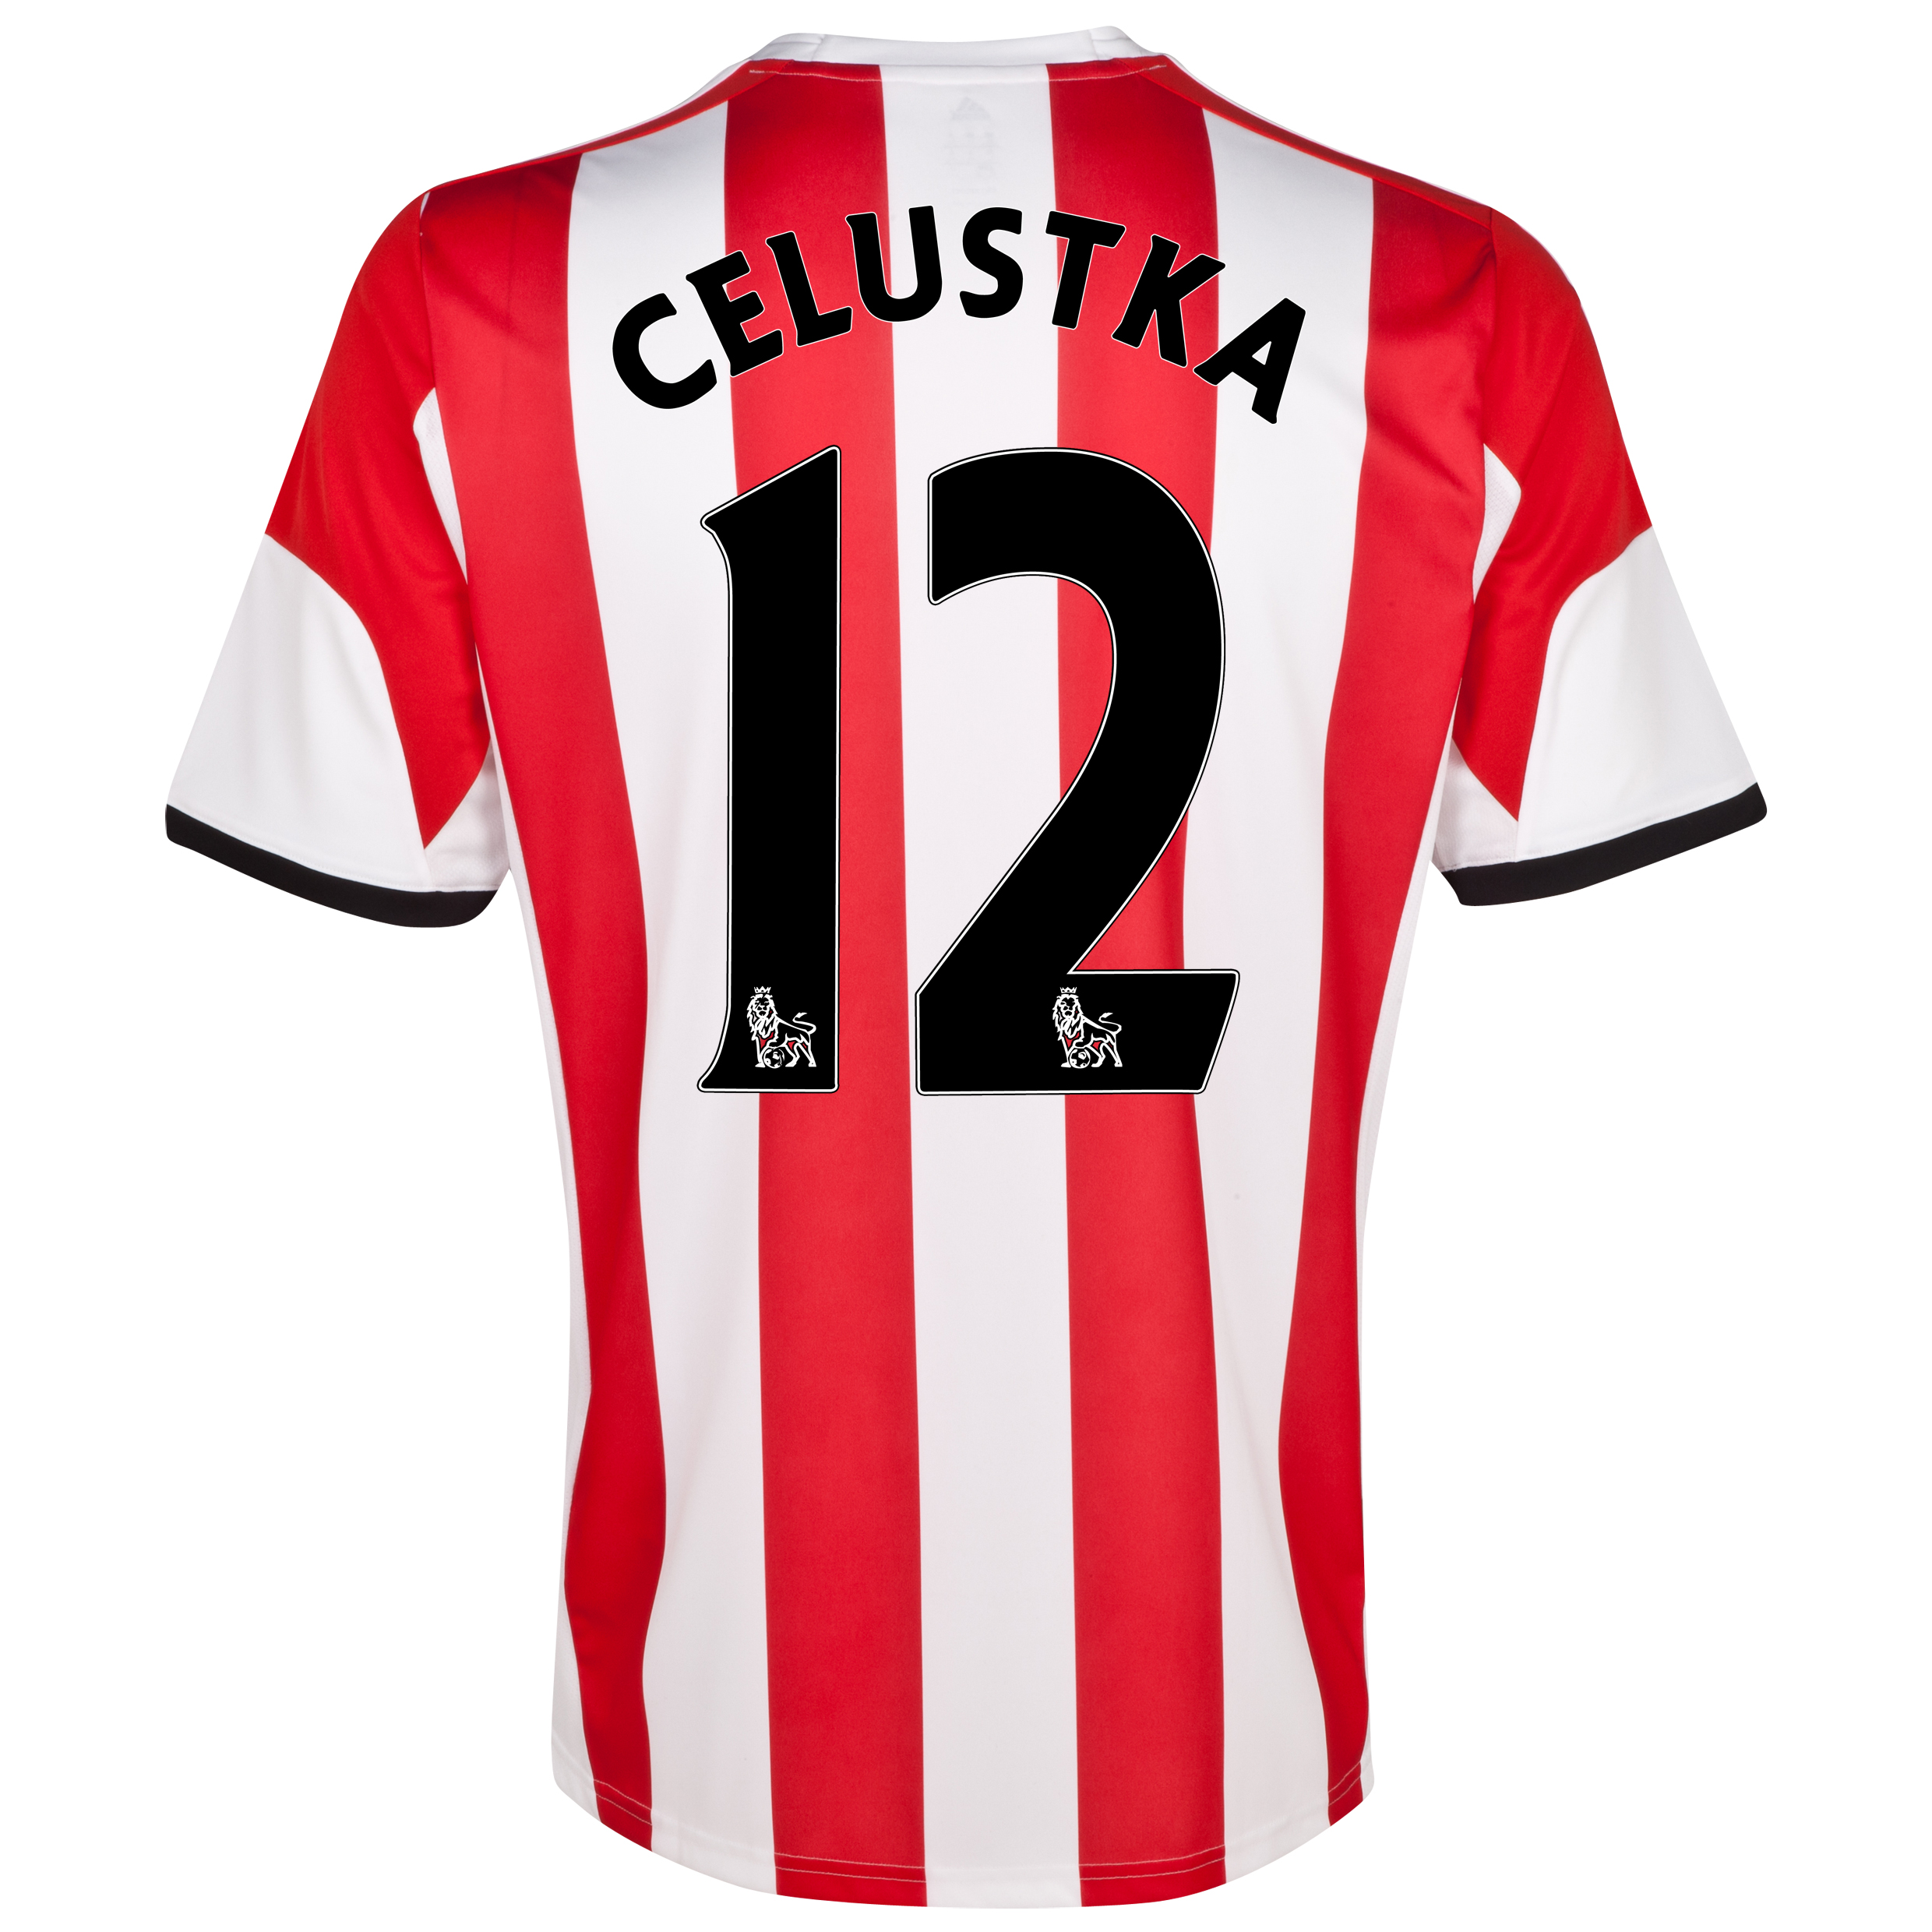 Sunderland Home Shirt 2013/14 - Junior with Celustka 12 printing